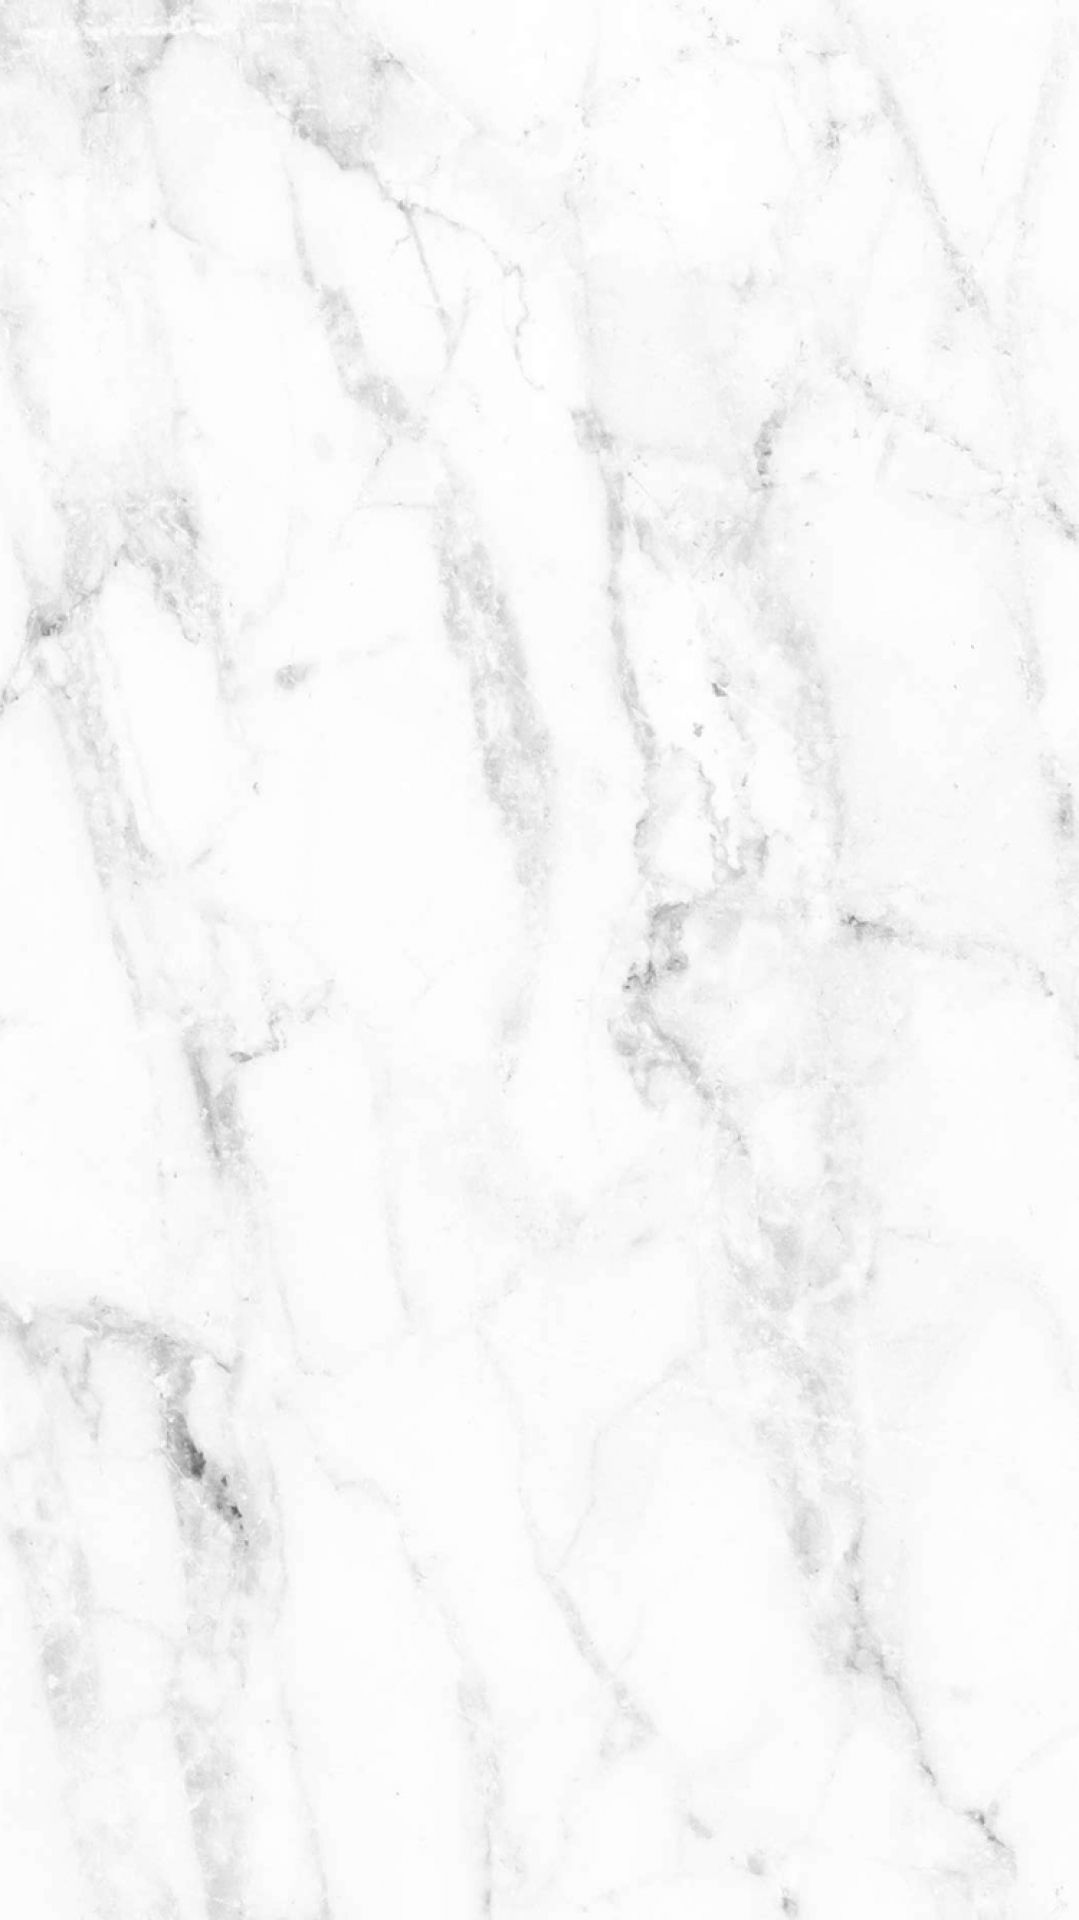 White Marble Wallpaper Iphone 6 Download Best White Marble